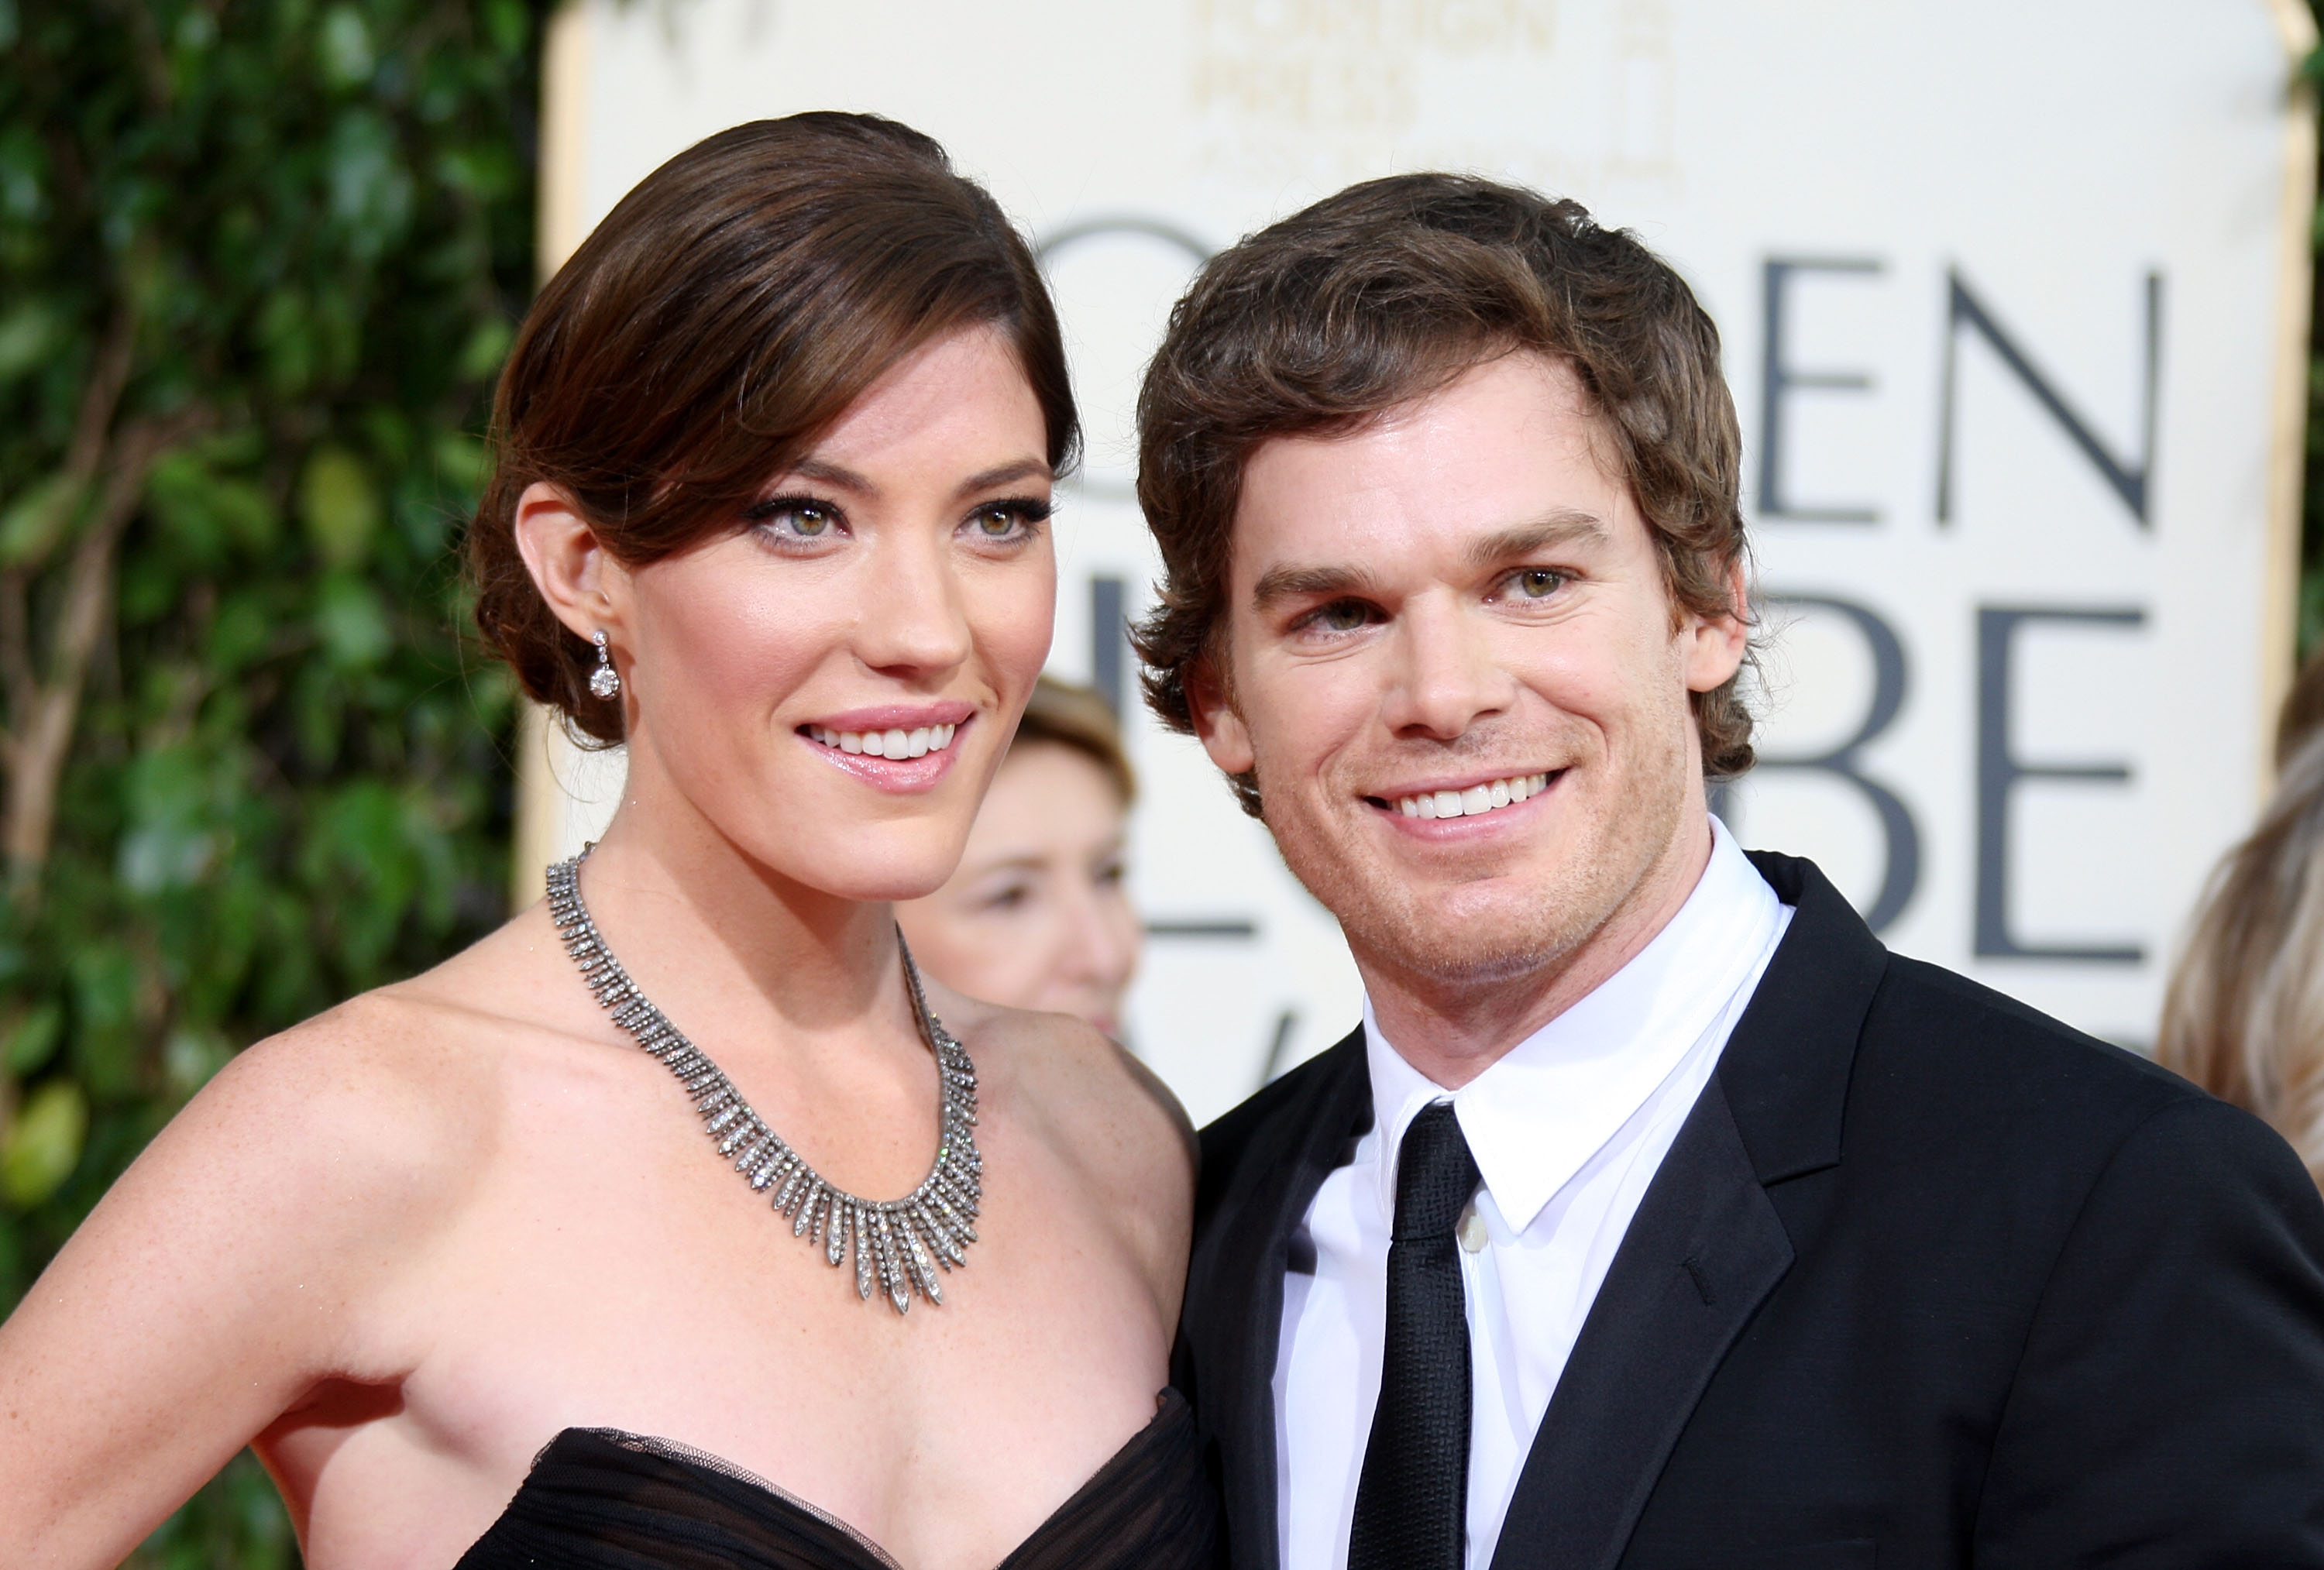 Actors Jennifer Carpenter and Michael C. Hall arrive at the 66th Annual Golden Globe Awards held at the Beverly Hilton Hotel on January 11, 2009, in Beverly Hills, California. (Photo by Frazer Harrison/Getty Images)